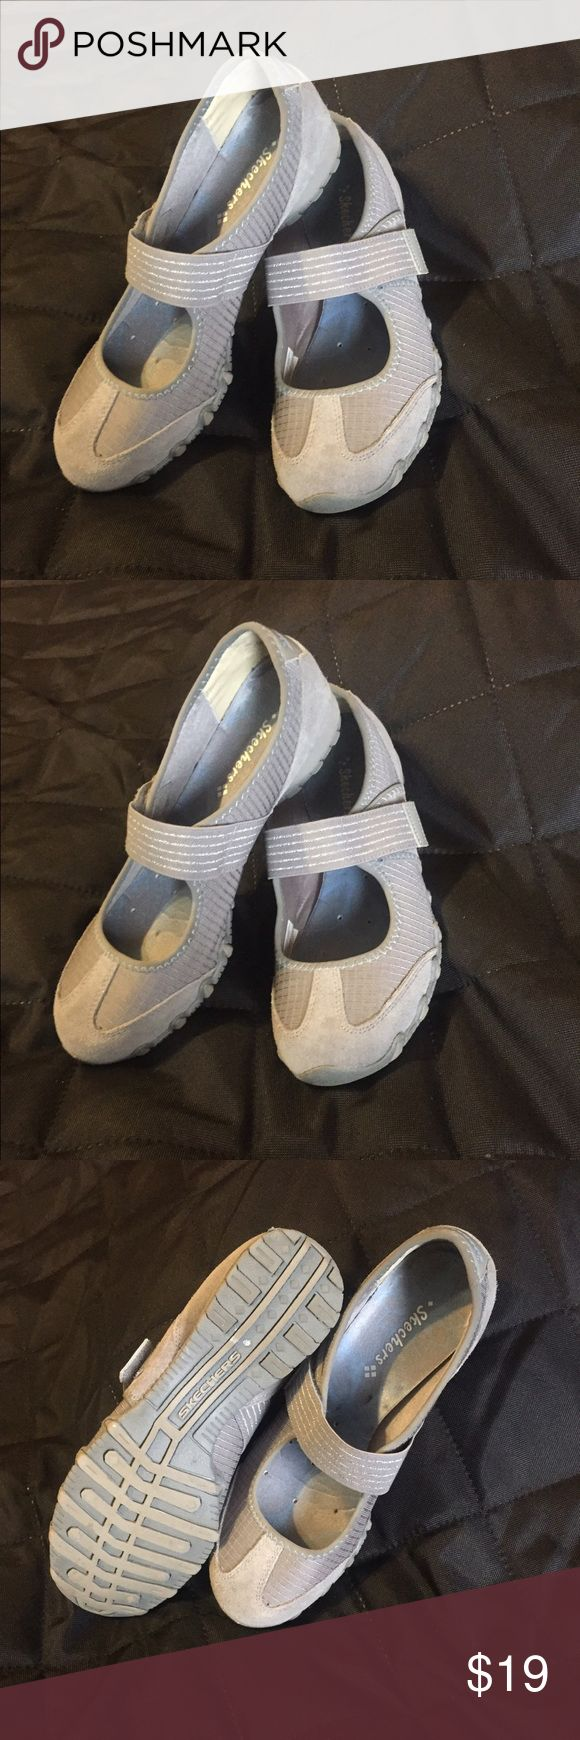 Skechers Gray Bikers Epic Mary Jane Walking Shoes LIKE NEW!!! Skechers  Mart Jane style walking shoe with adjustable Velcro closing and cool satin-like lining. $59 retail. Skechers Shoes Sneakers